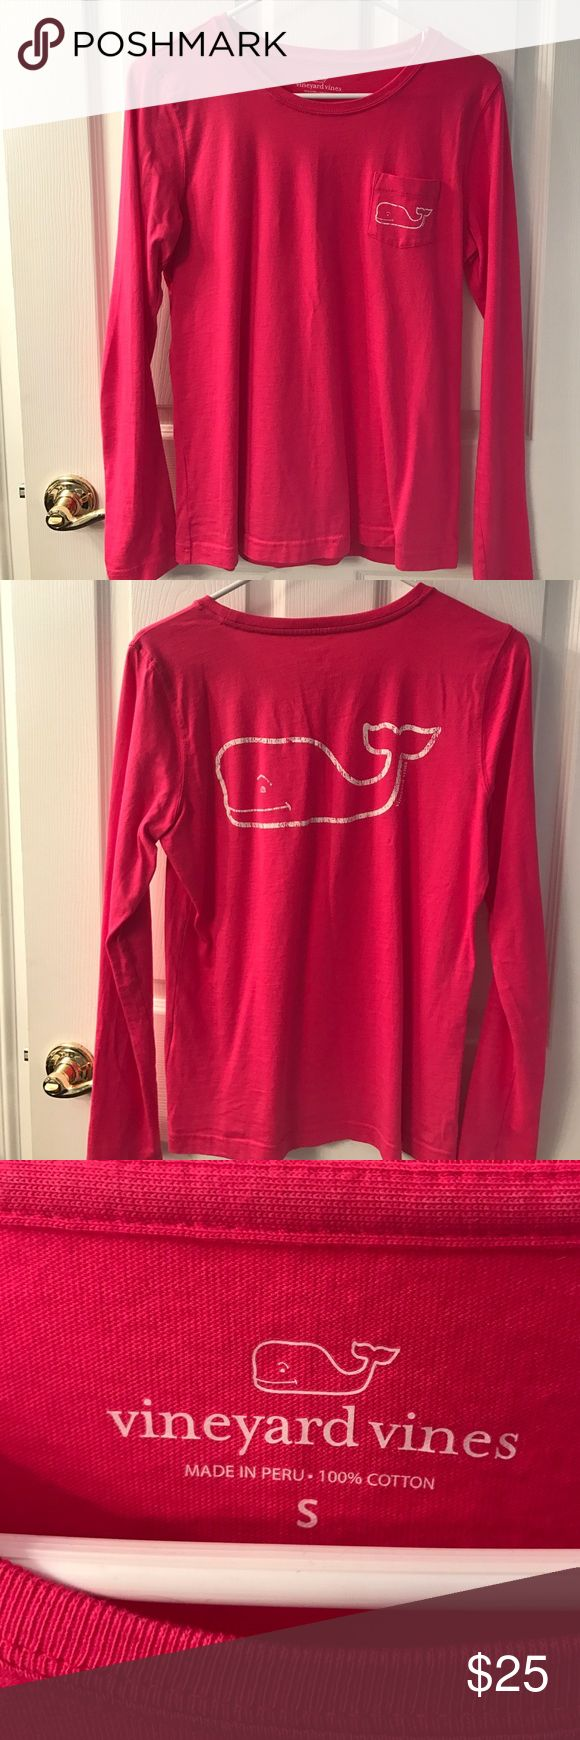 Vineyard Vines ladies t-shirt Pink VV ladies t-shirt, size small, in great condition with no signs of wear! Vineyard Vines Tops Tees - Long Sleeve